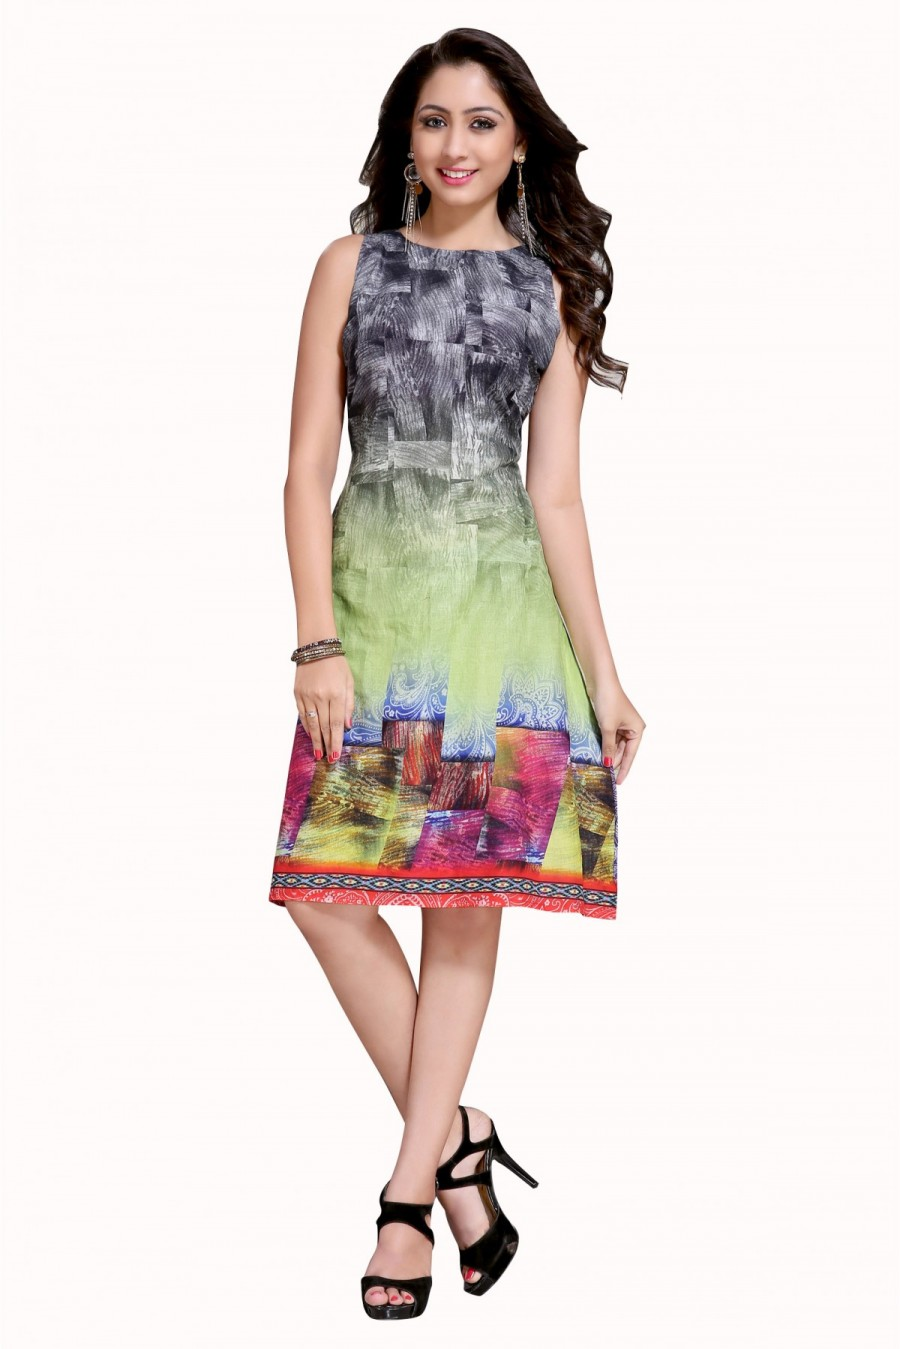 55d719b058666 Buy Casual Wear Cotton Printed Kurti in Grey and Green Colour   547940